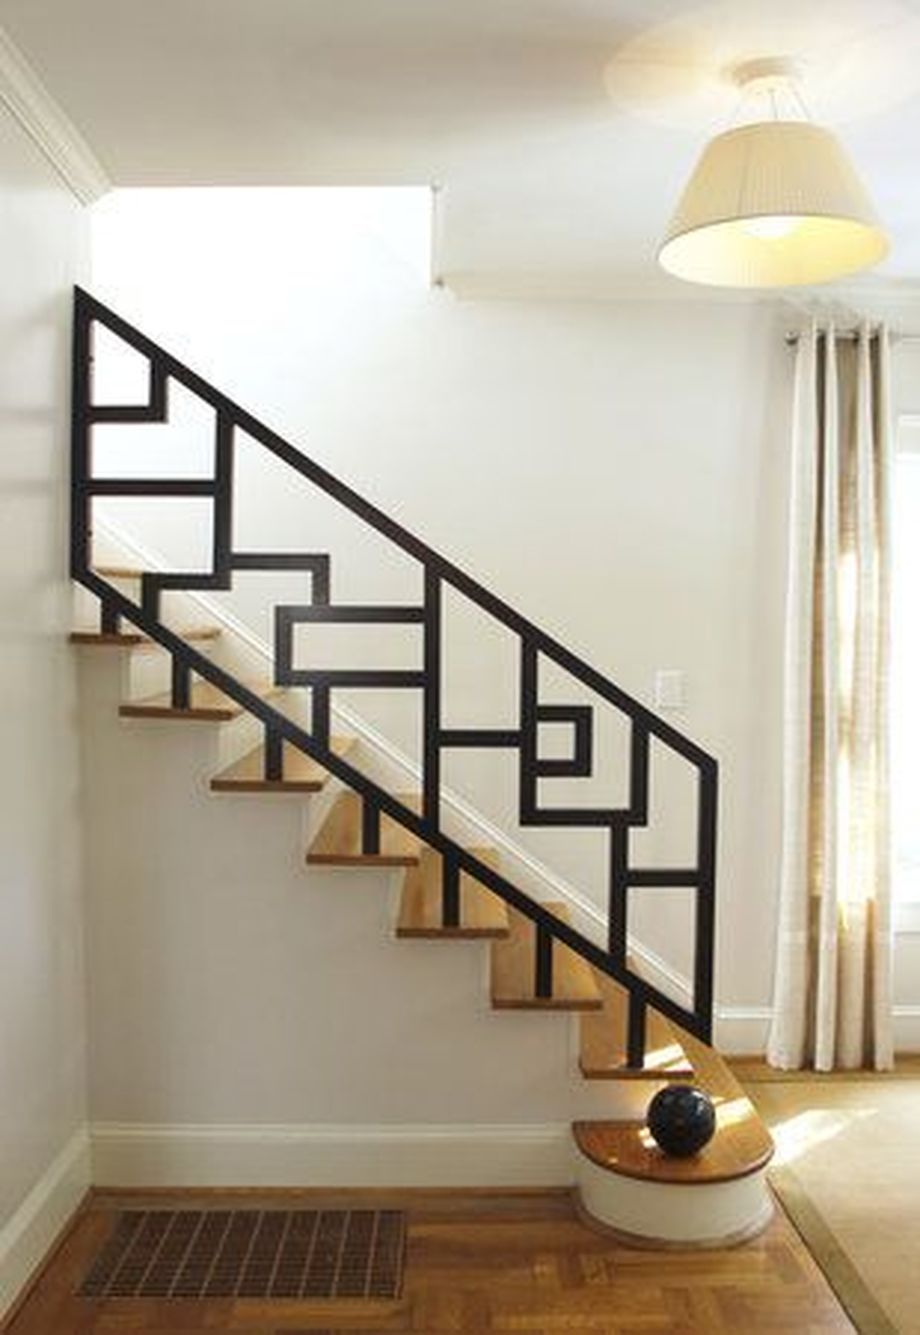 40 Awesome Modern Stairs Railing Design For Your Home Stair | Staircase Railing Designs For Your Home | Contemporary | Extraordinary | Country Home Interior | Eye Catching | Covered